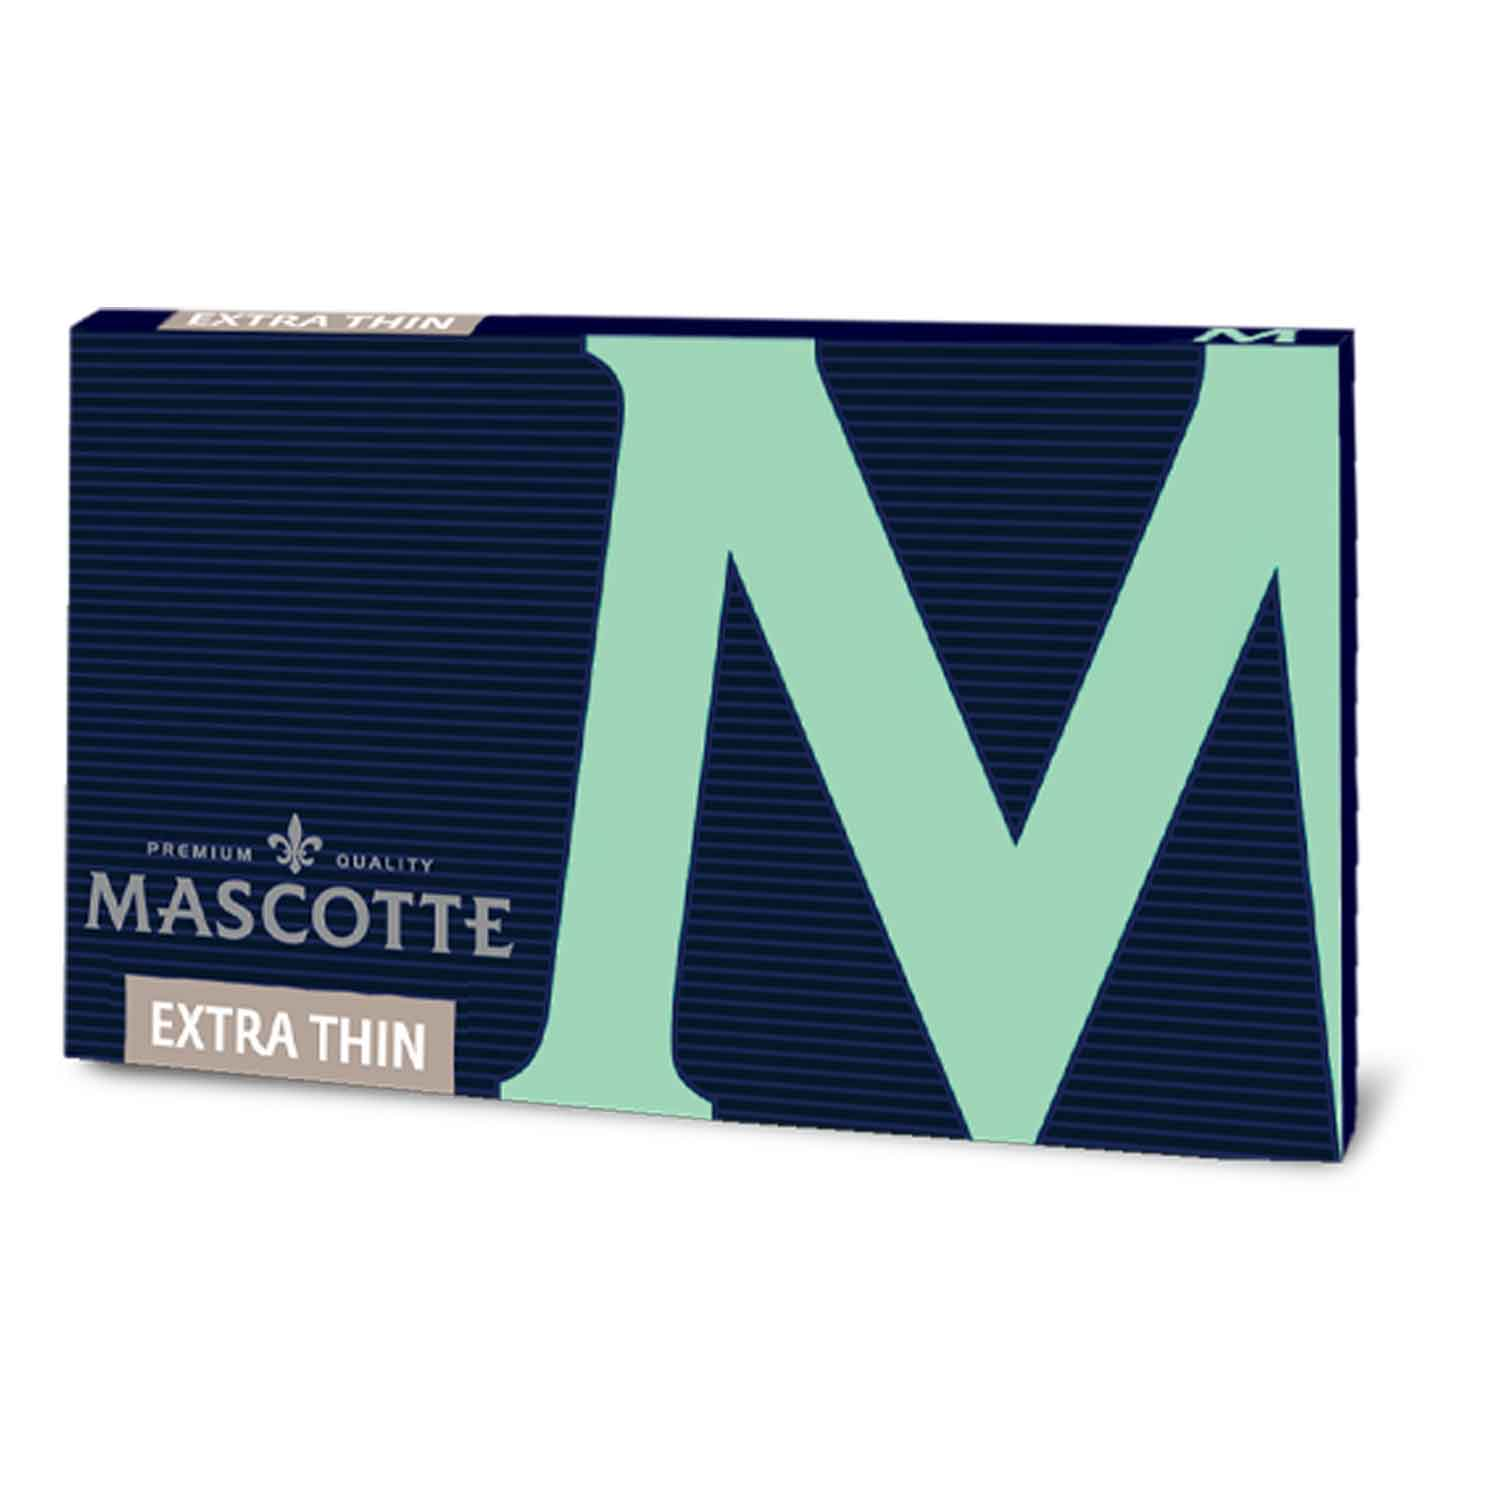 Mascotte M-series extra thin 100 papers